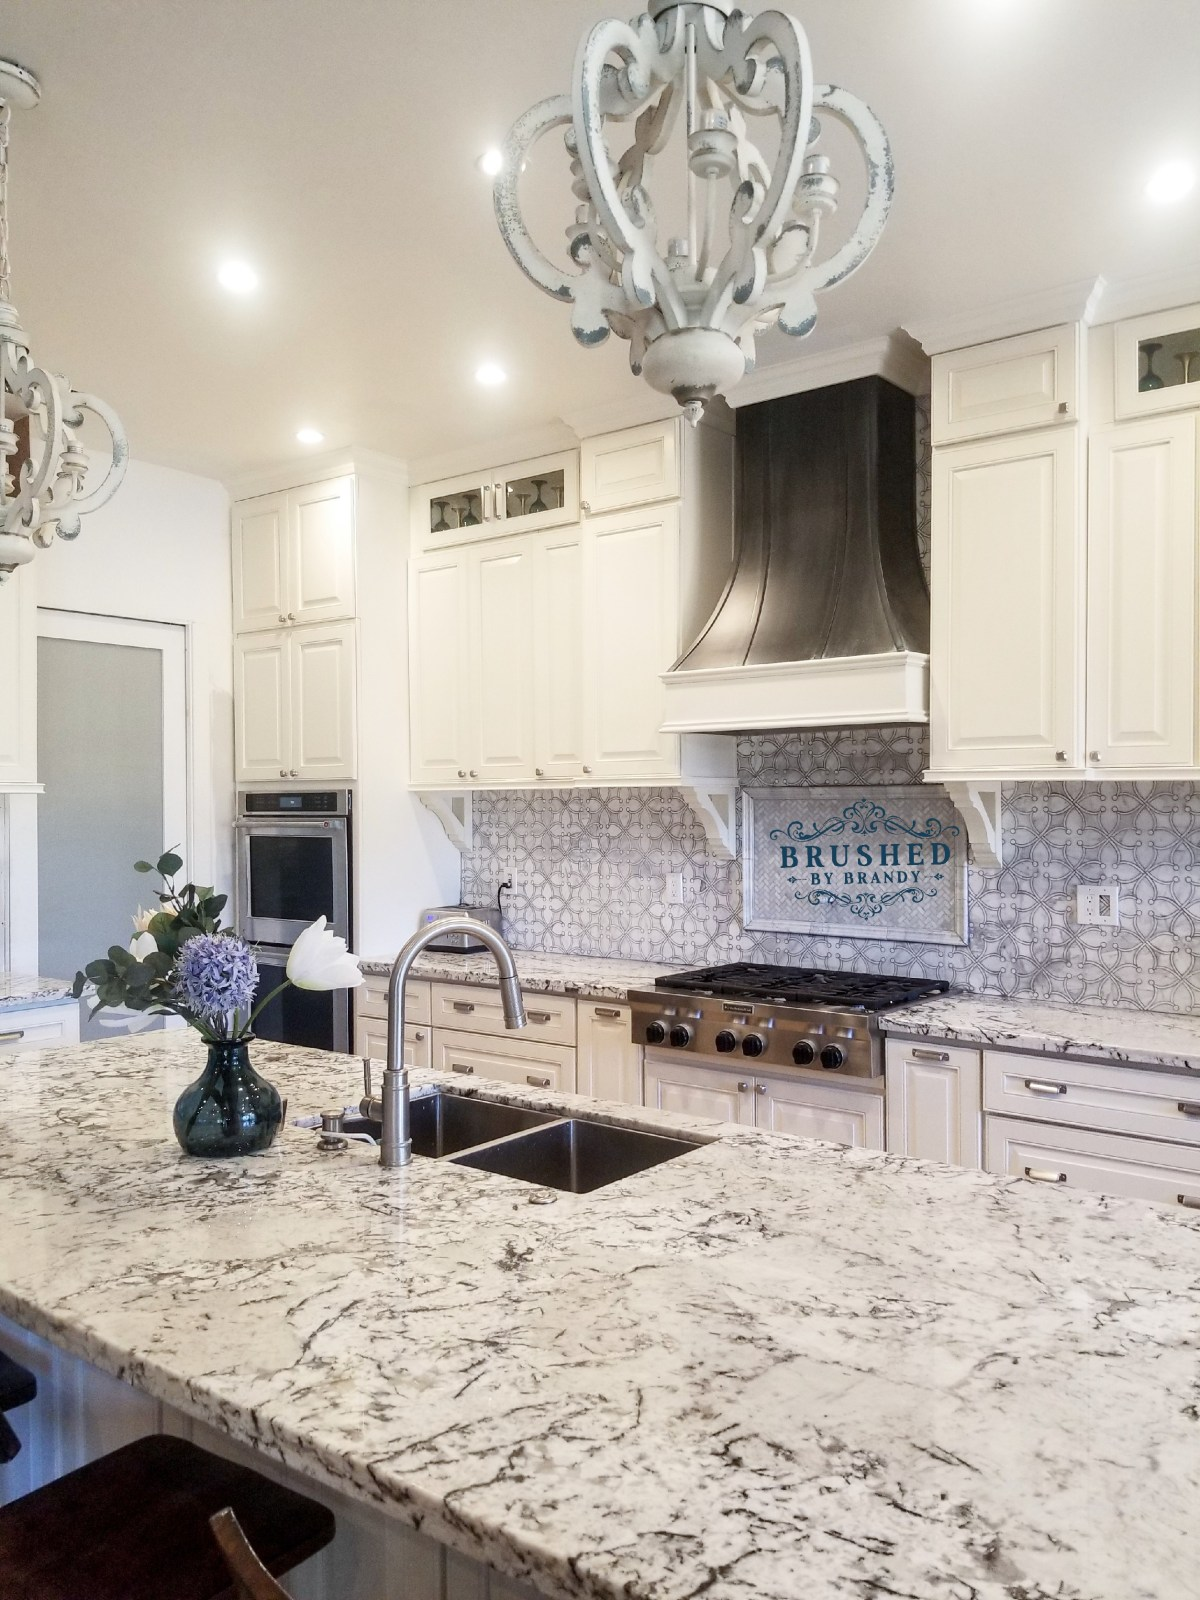 Complete Full Kitchen Remodel with DIY Painted Range Hood